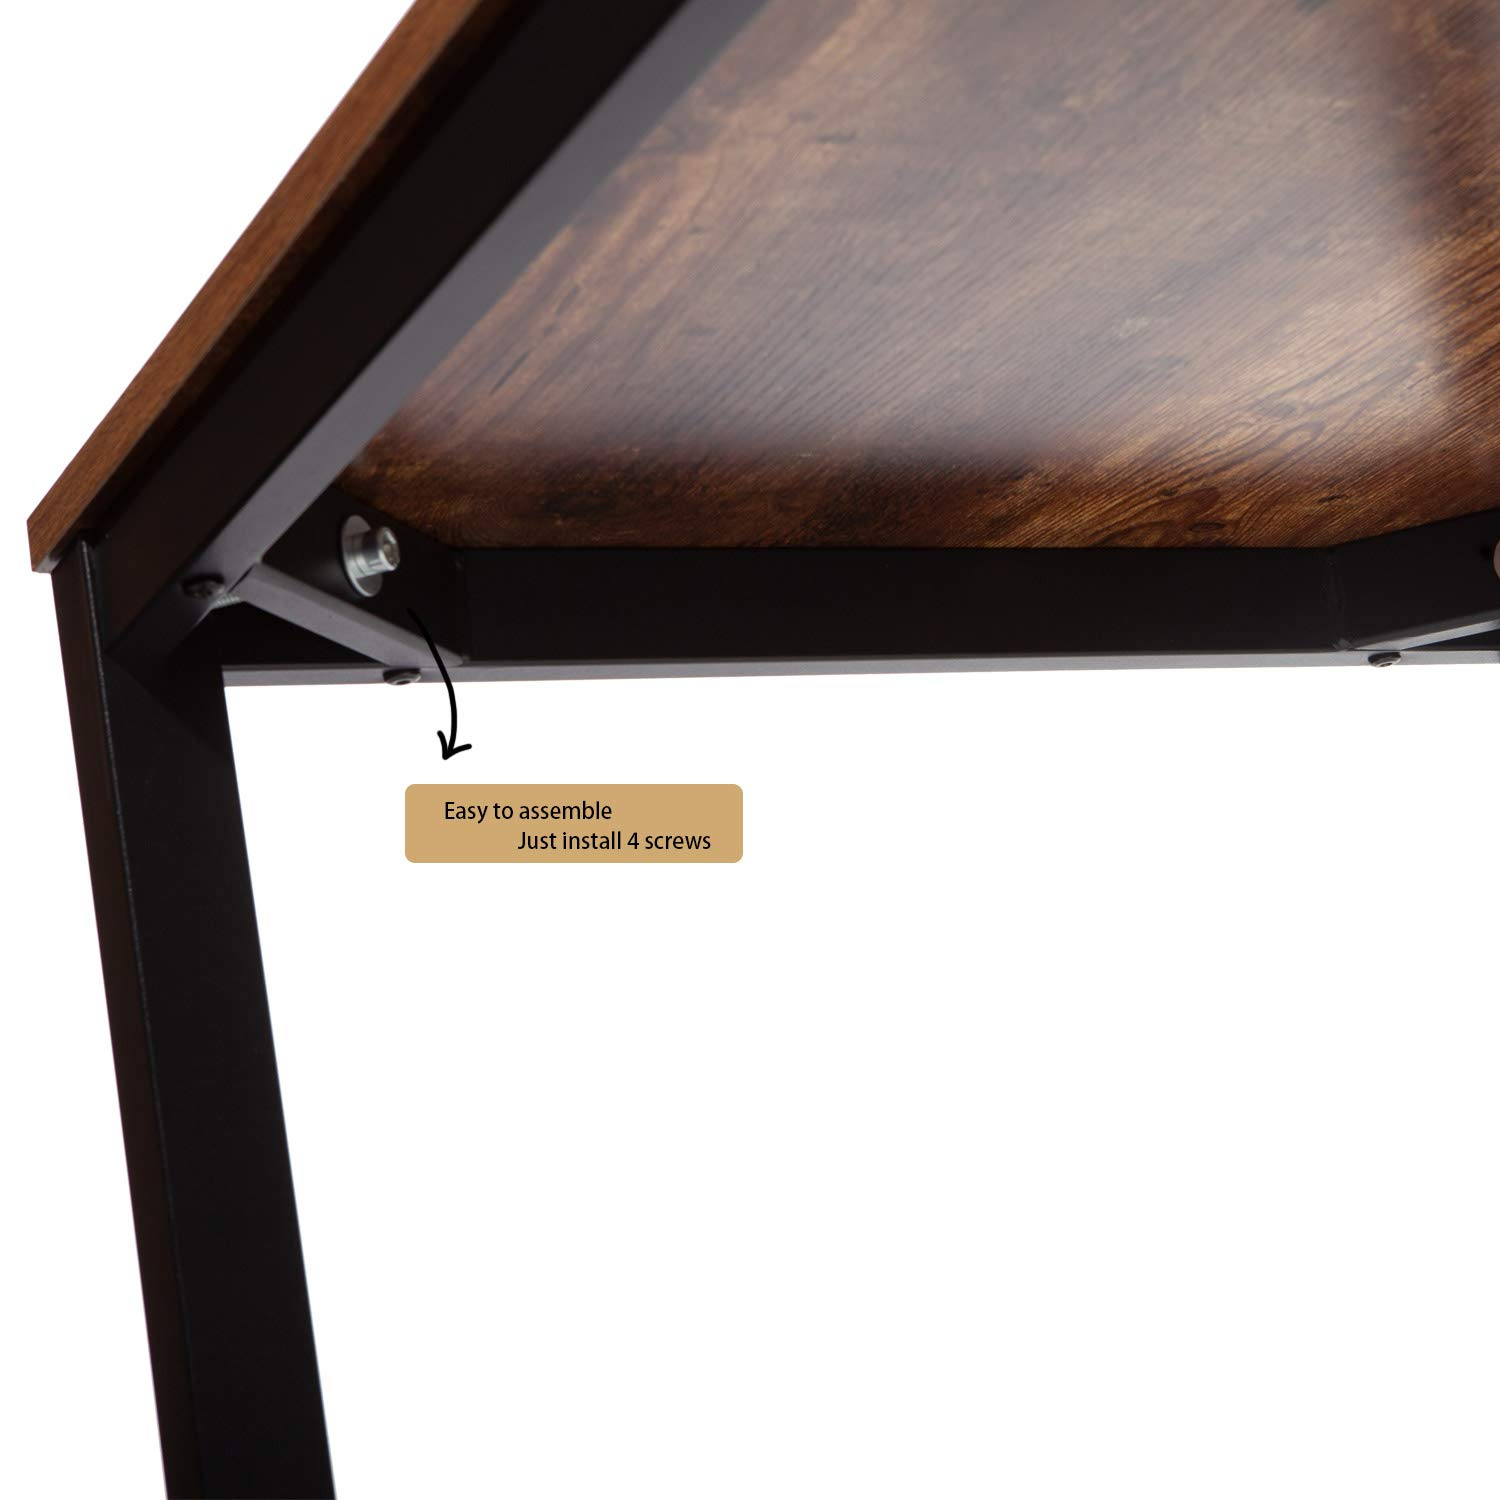 IRONCK Computer Desk, 47'' Office Desk with 0.7'' Thicker Tabletop 1.6'' Sturdy Metal Frame, Simple Study Table, Industrial Style Desk for Home Office, Matt Brown by IRONCK (Image #4)